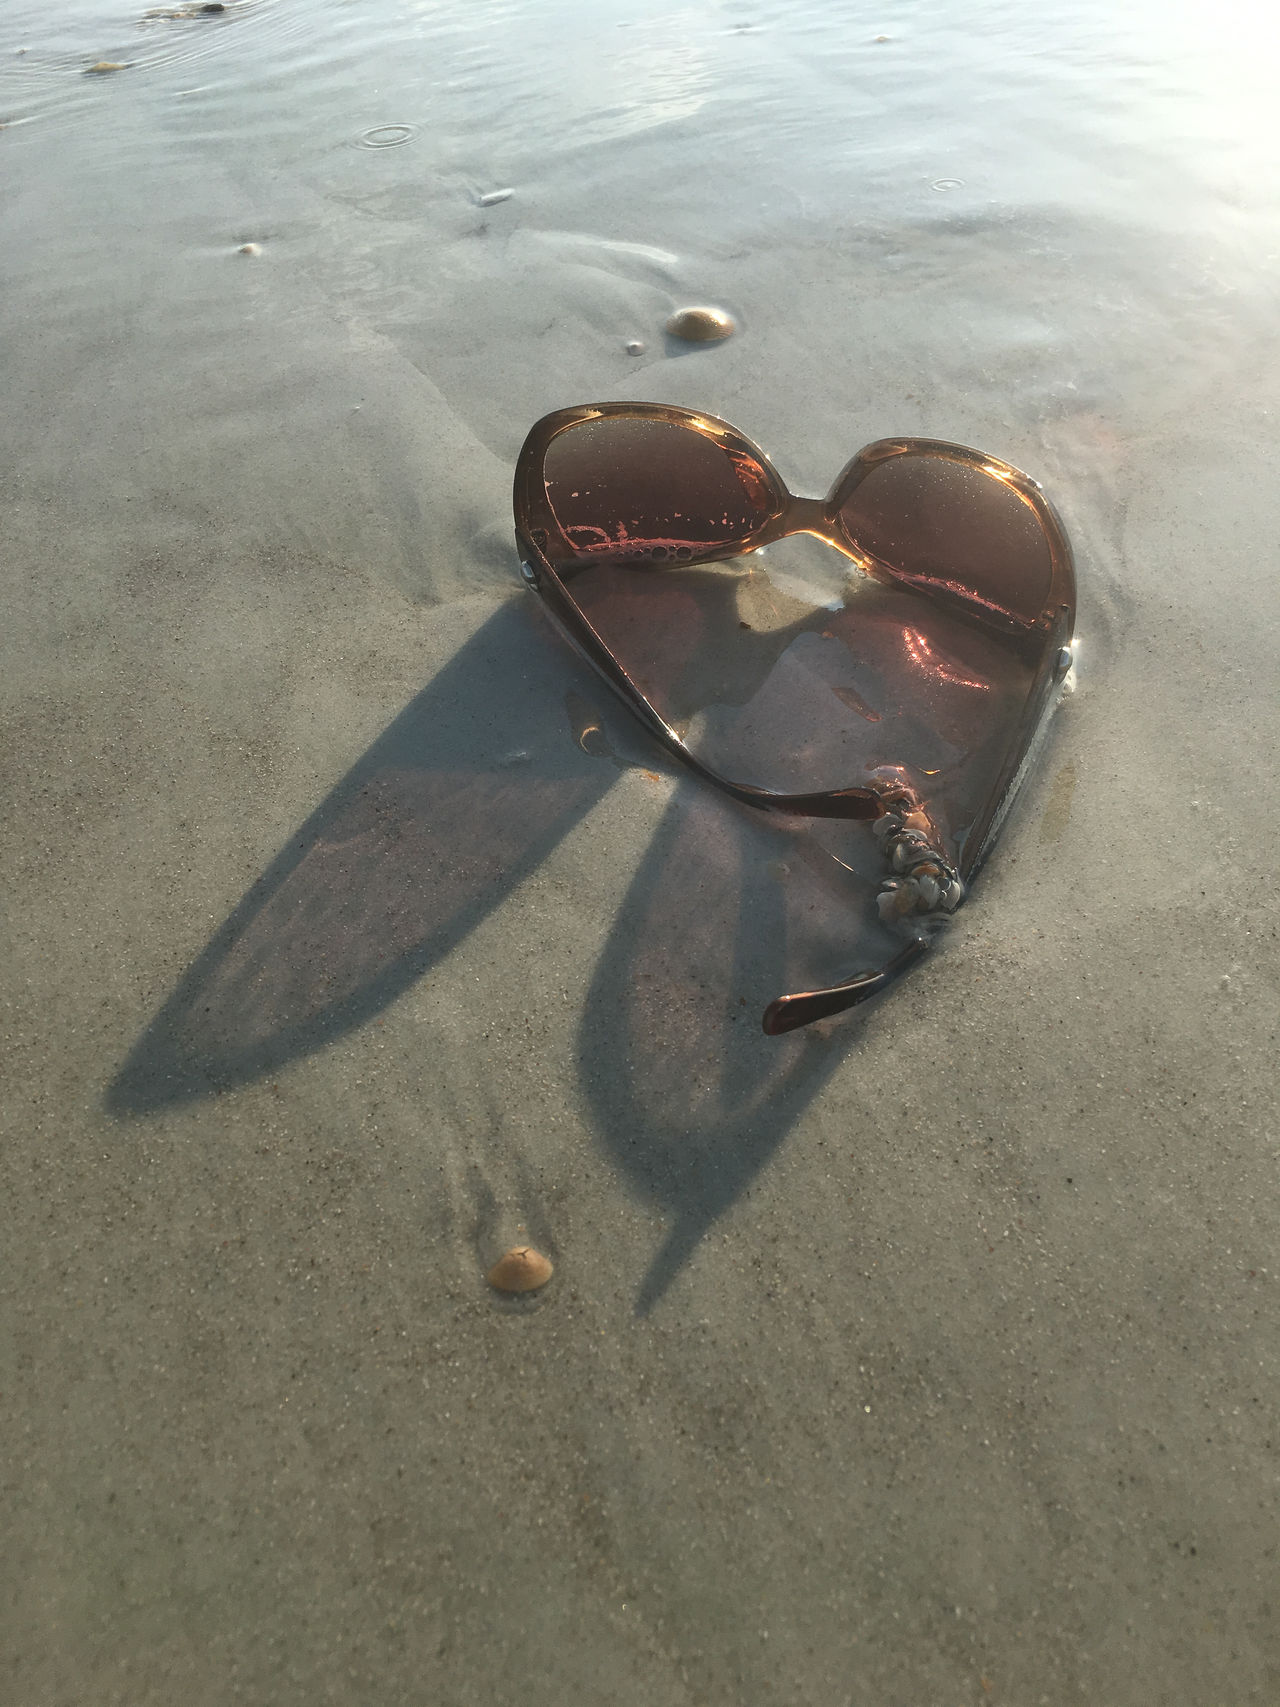 Sunglasses reflecting shadows Beach Beach Photography Close-up Day High Angle View Nature No People Outdoors Reflection Sand Shadows & Lights Sunglasses Water